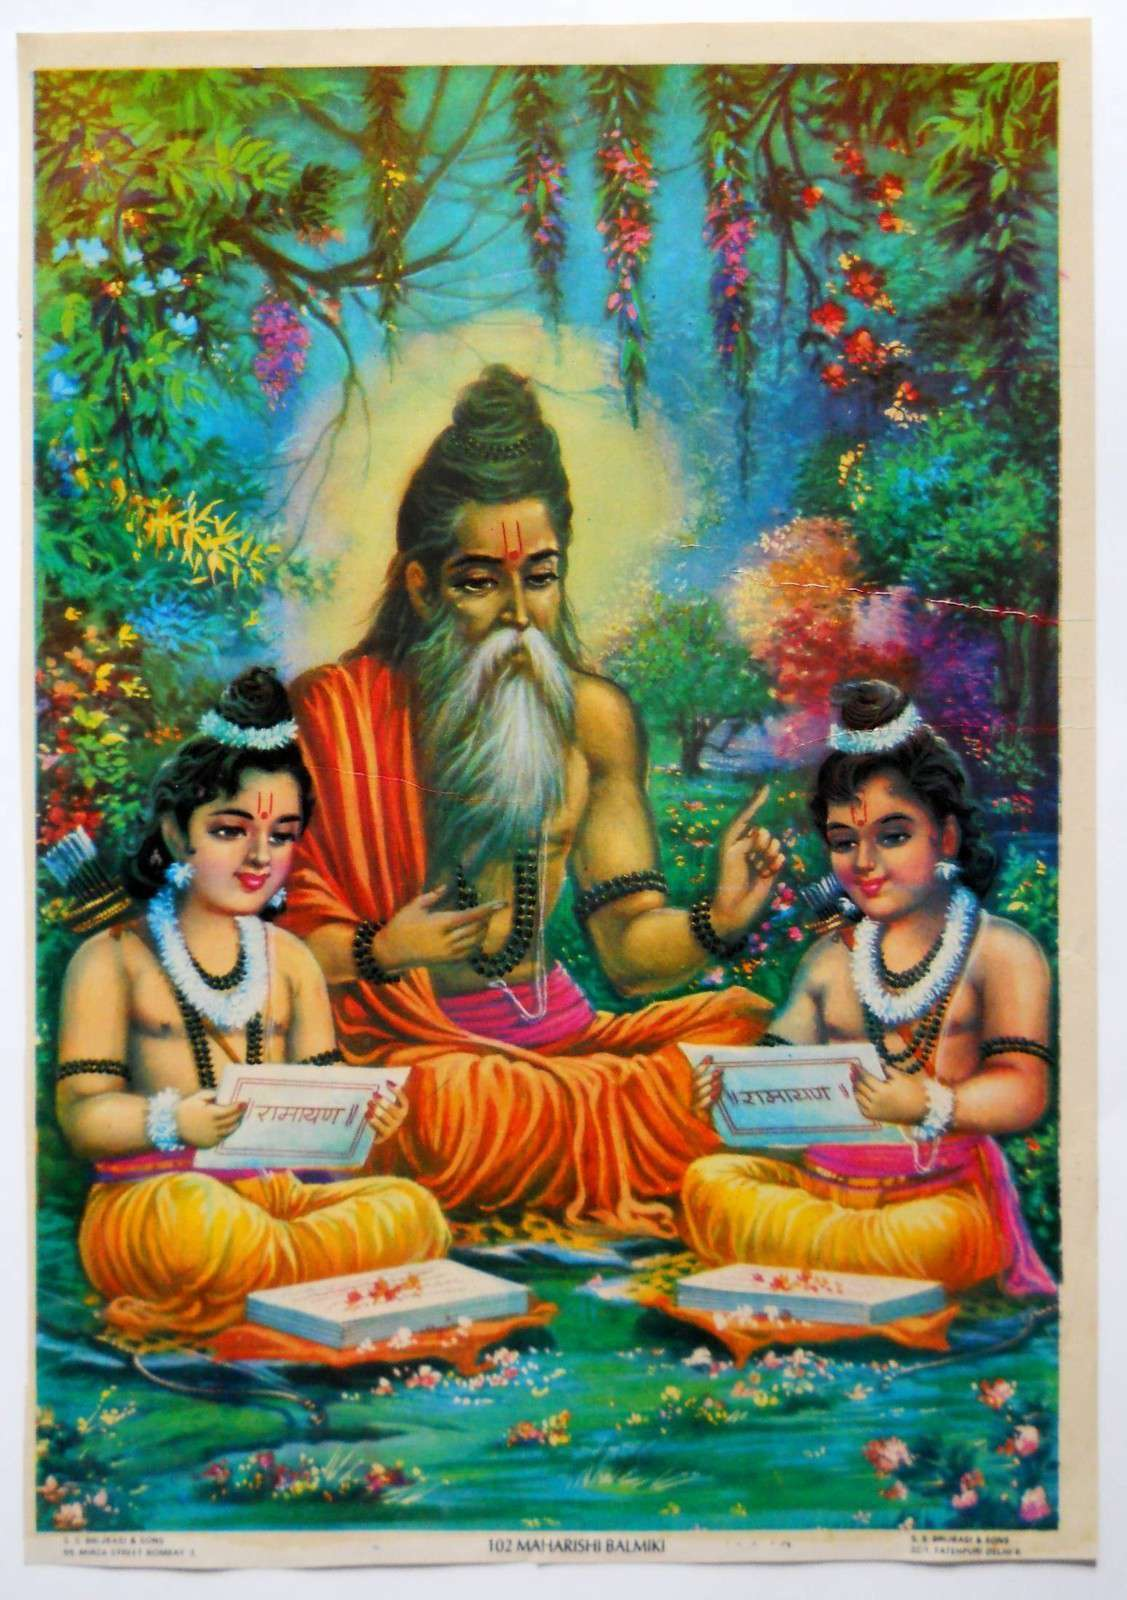 Valmiki Ramayanam in english: Index to contents